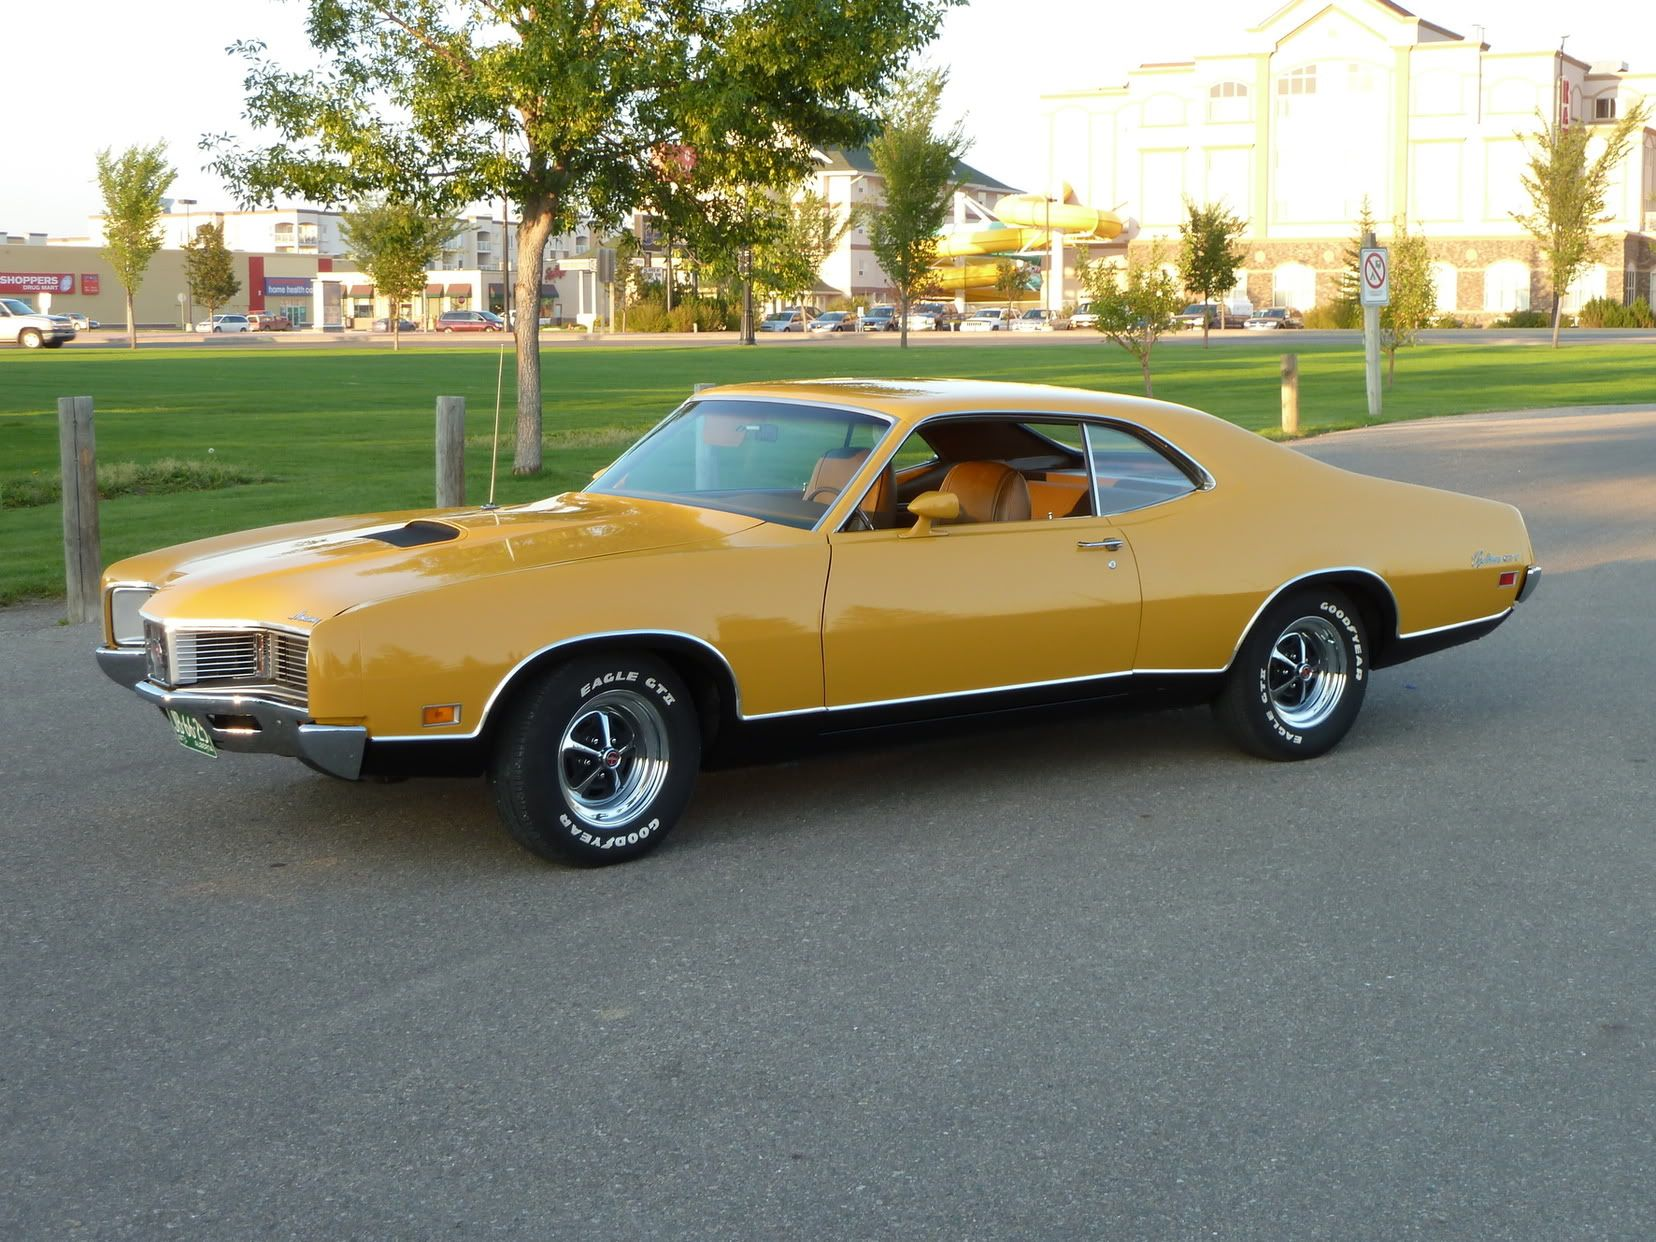 1972 mercury montego n code 429 restomod motorcycle custom - 1971 Mercury Cyclone Gt